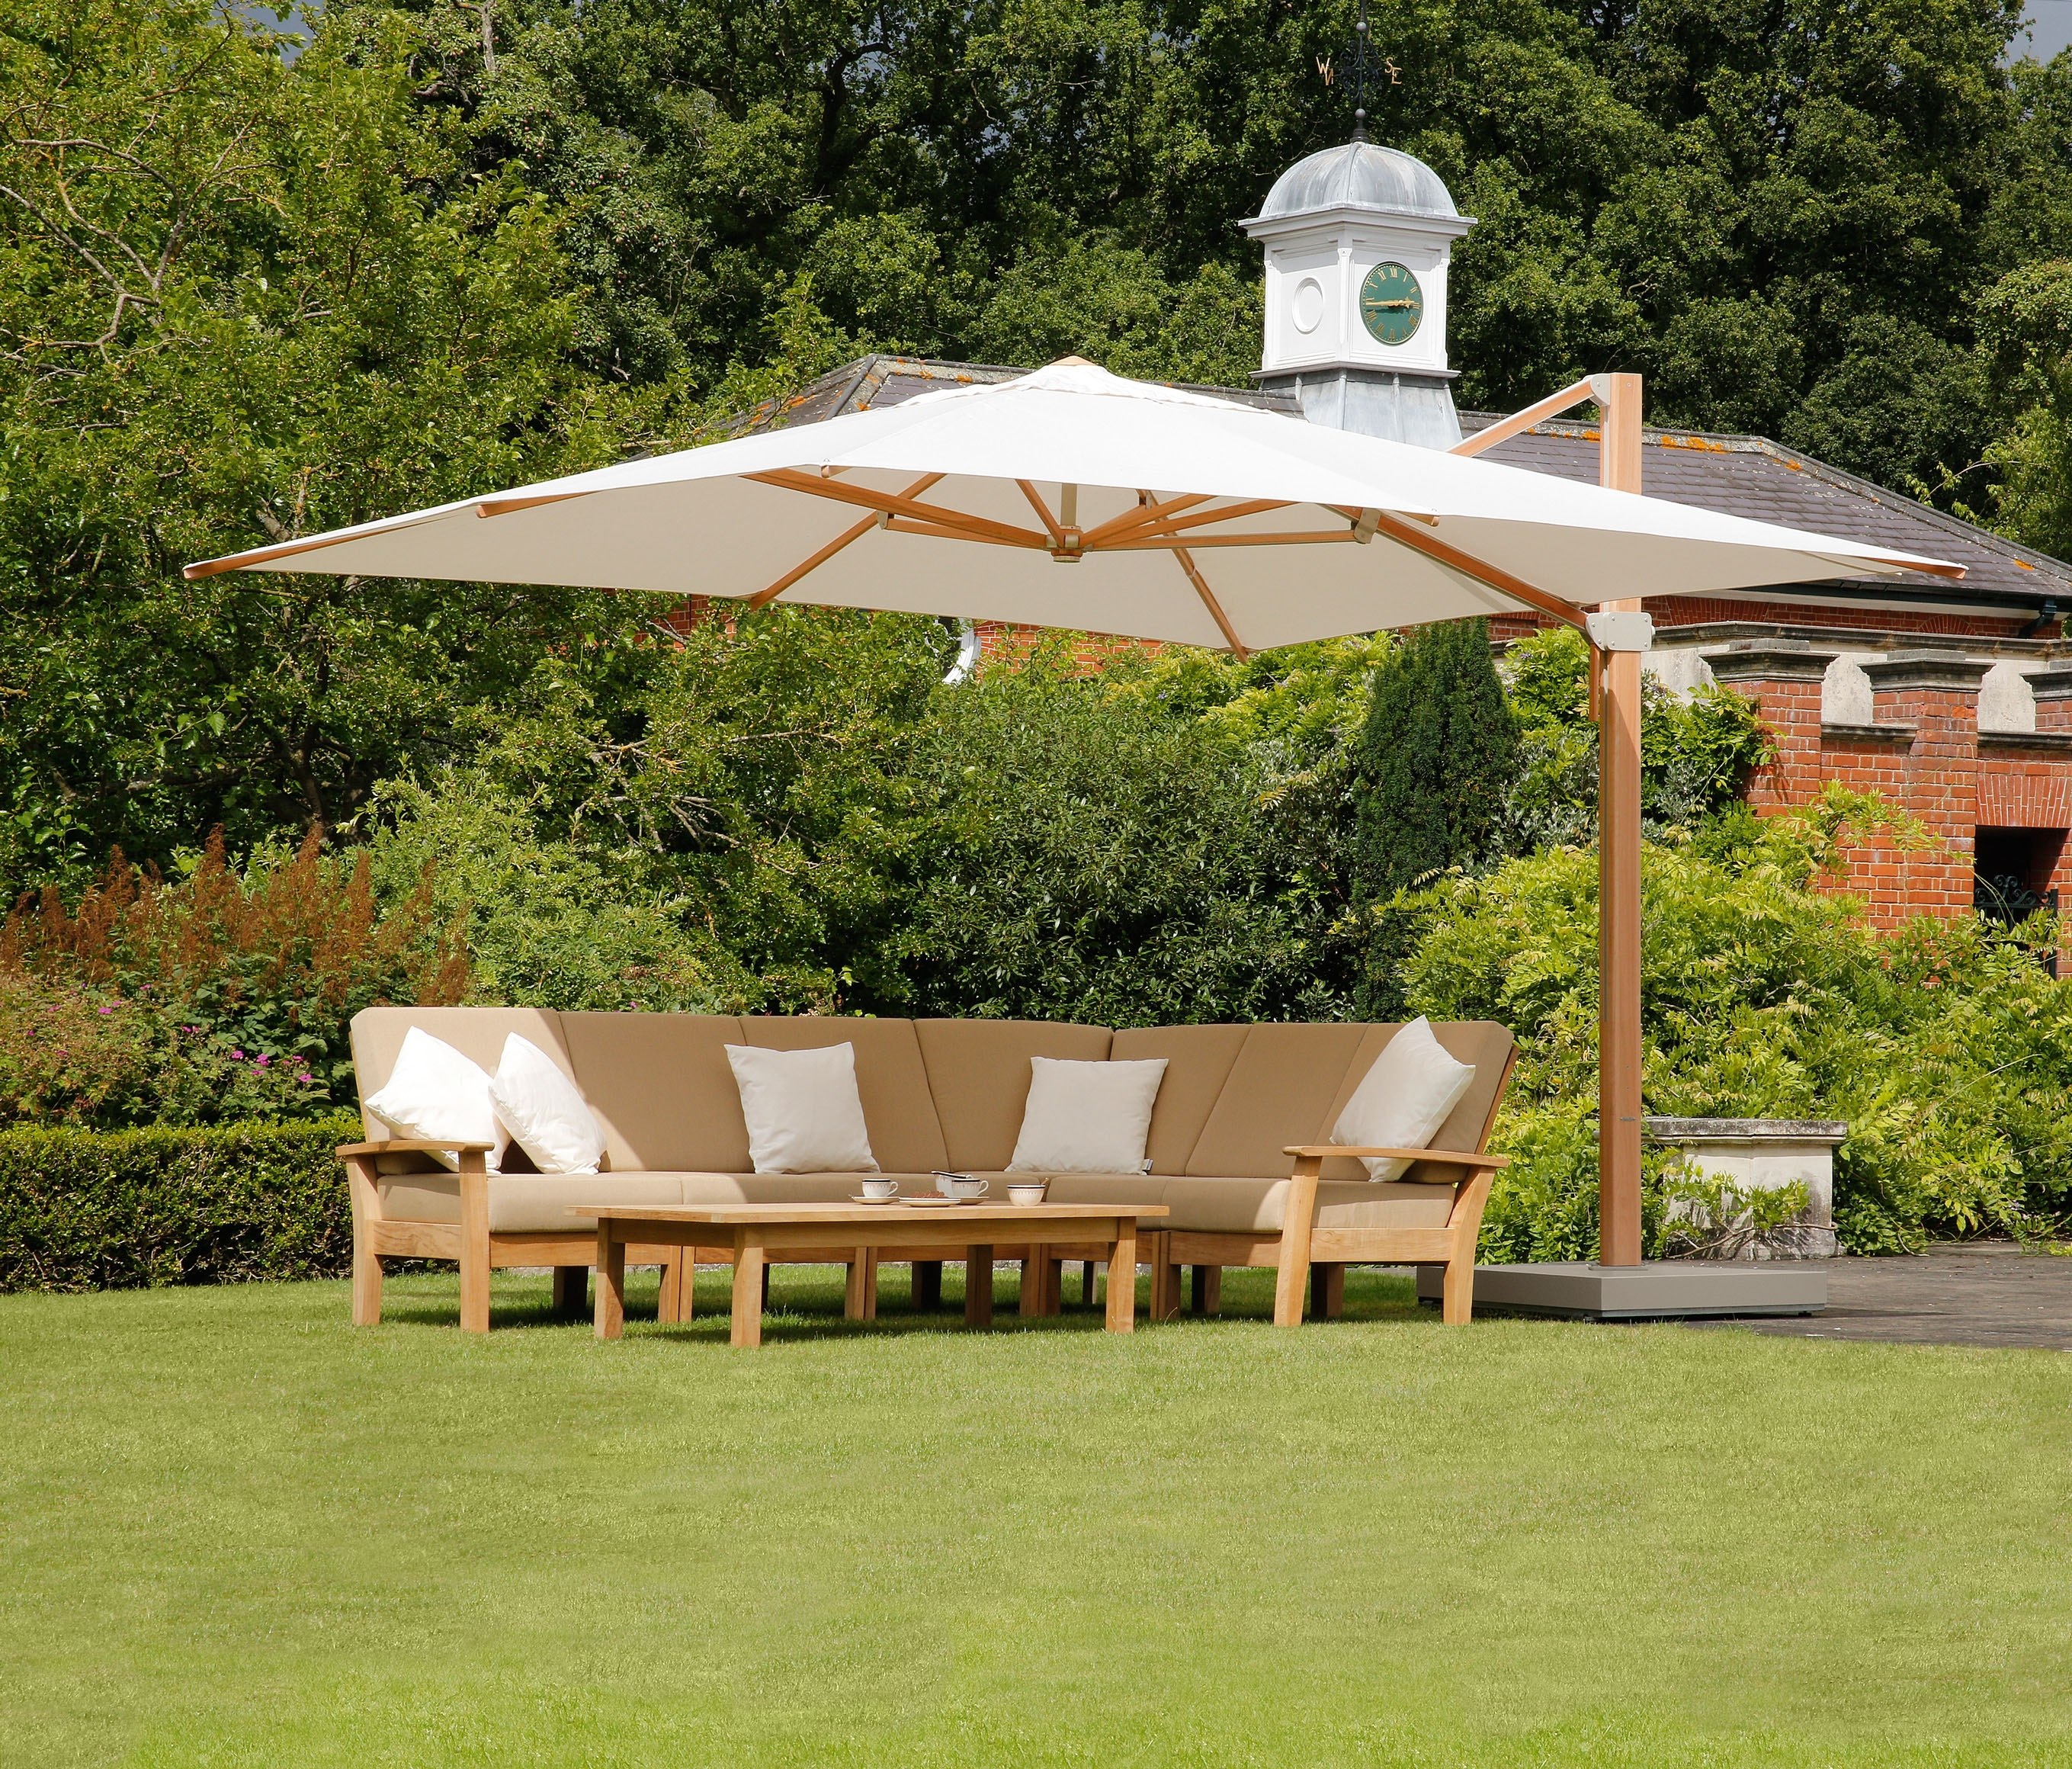 Image of: Barlowtyrie Hotel Best Commercial Grade Outdoor Furniture